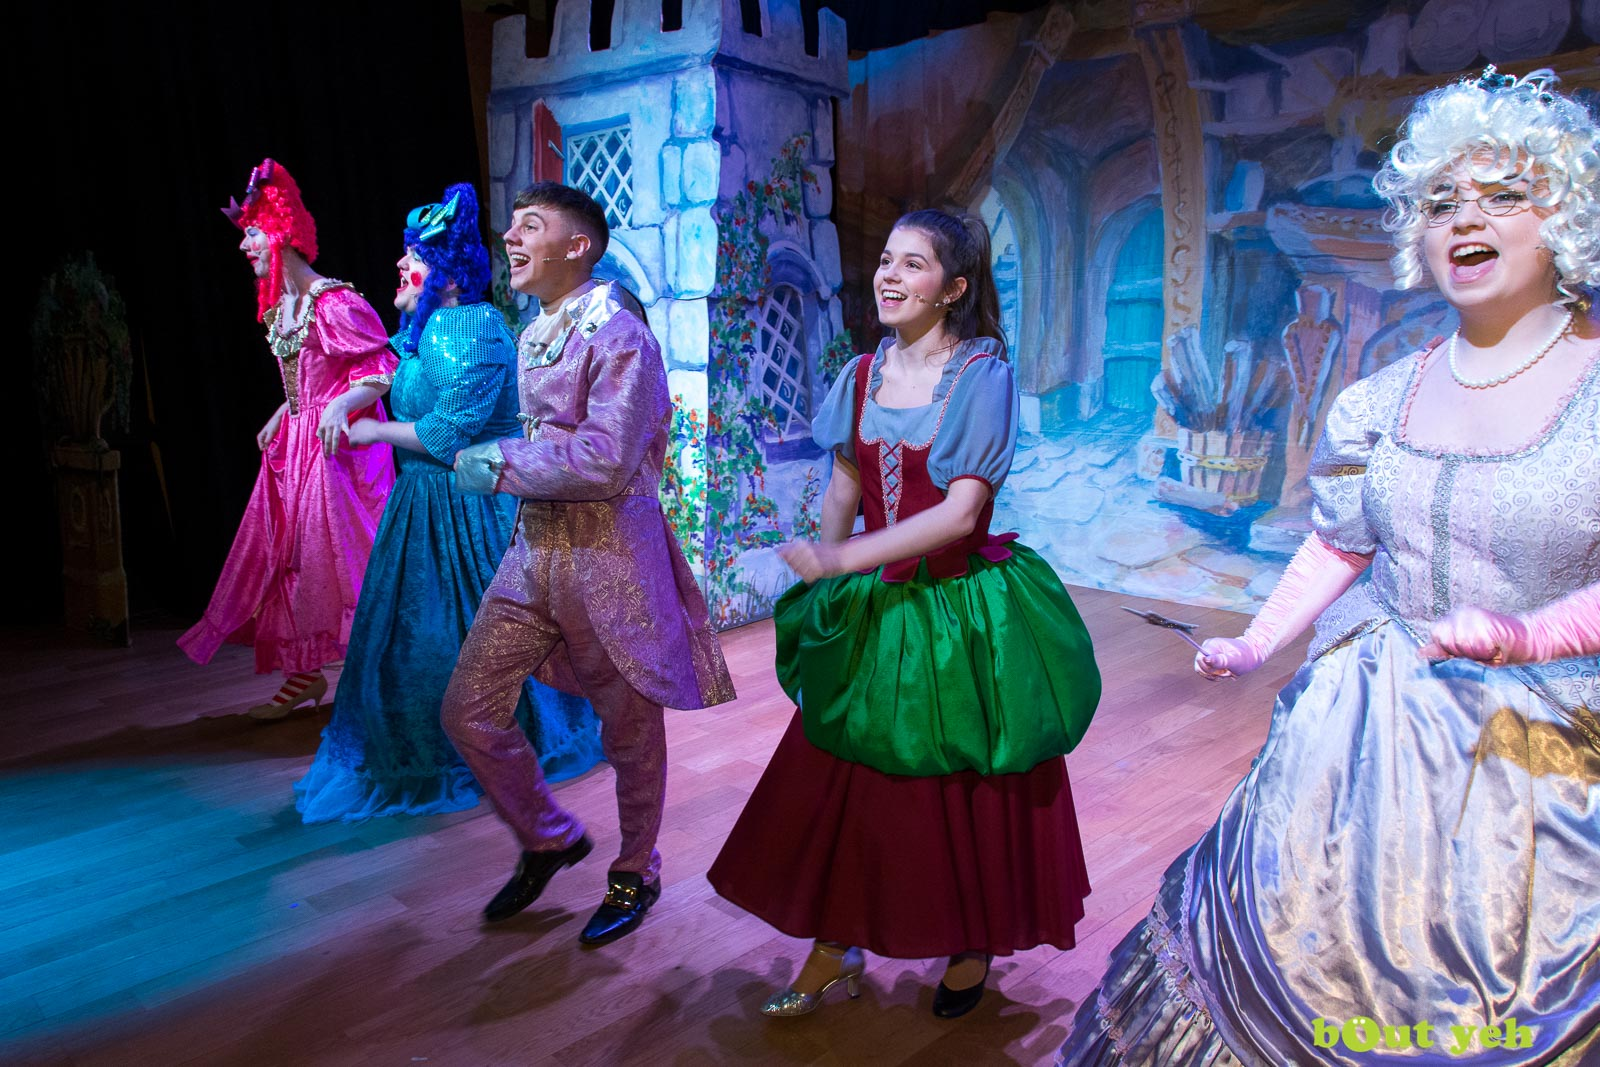 PR photographers Belfast portfolio photo 0200 of Cinderella pantomime at the Old Courthouse Theatre Antrim - Bout Yeh photography and video production services Belfast, Northern Ireland